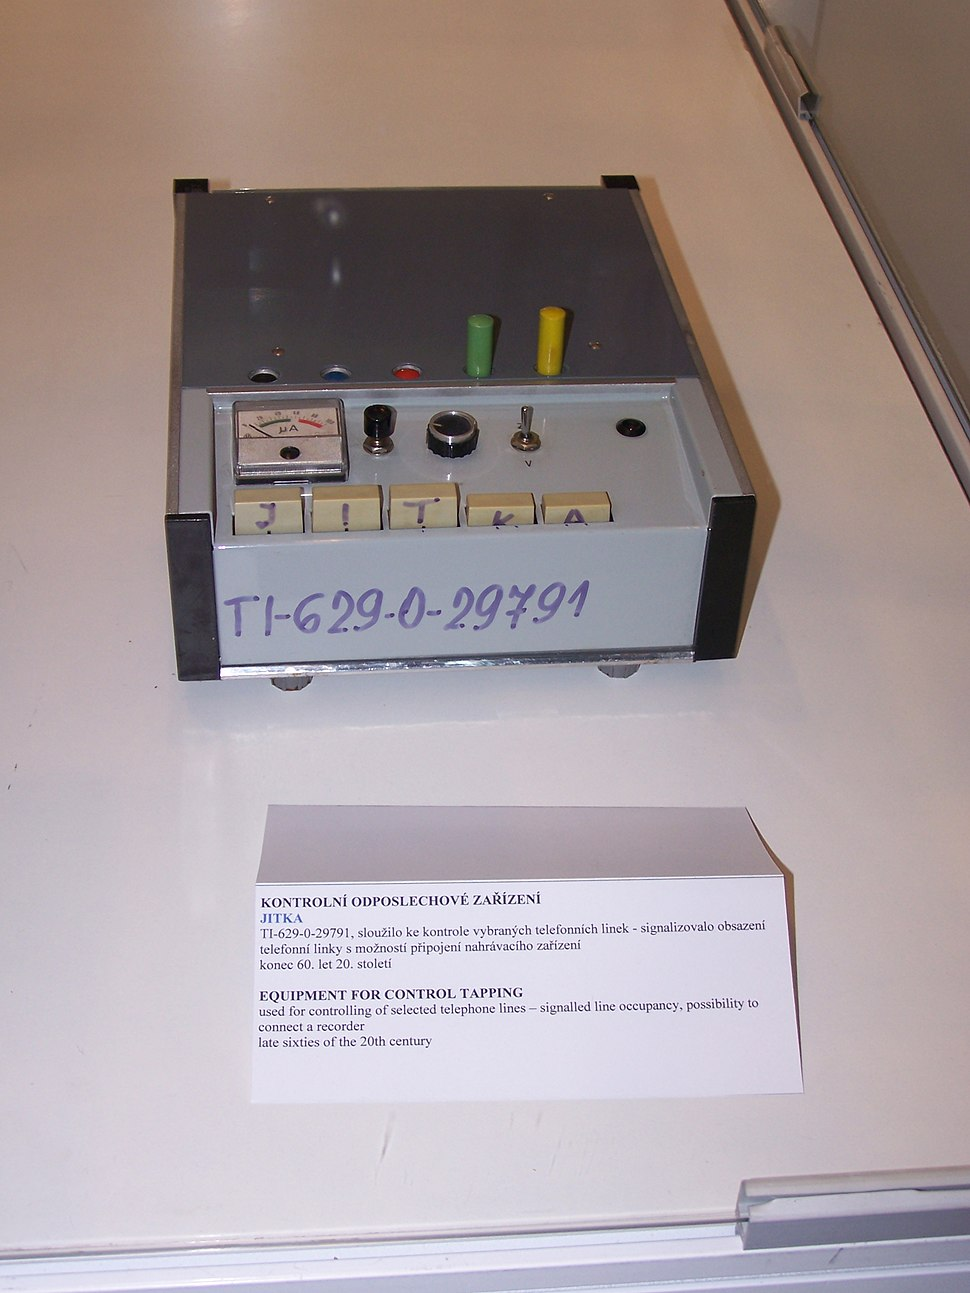 IDET2007 Jitka phone tapping device